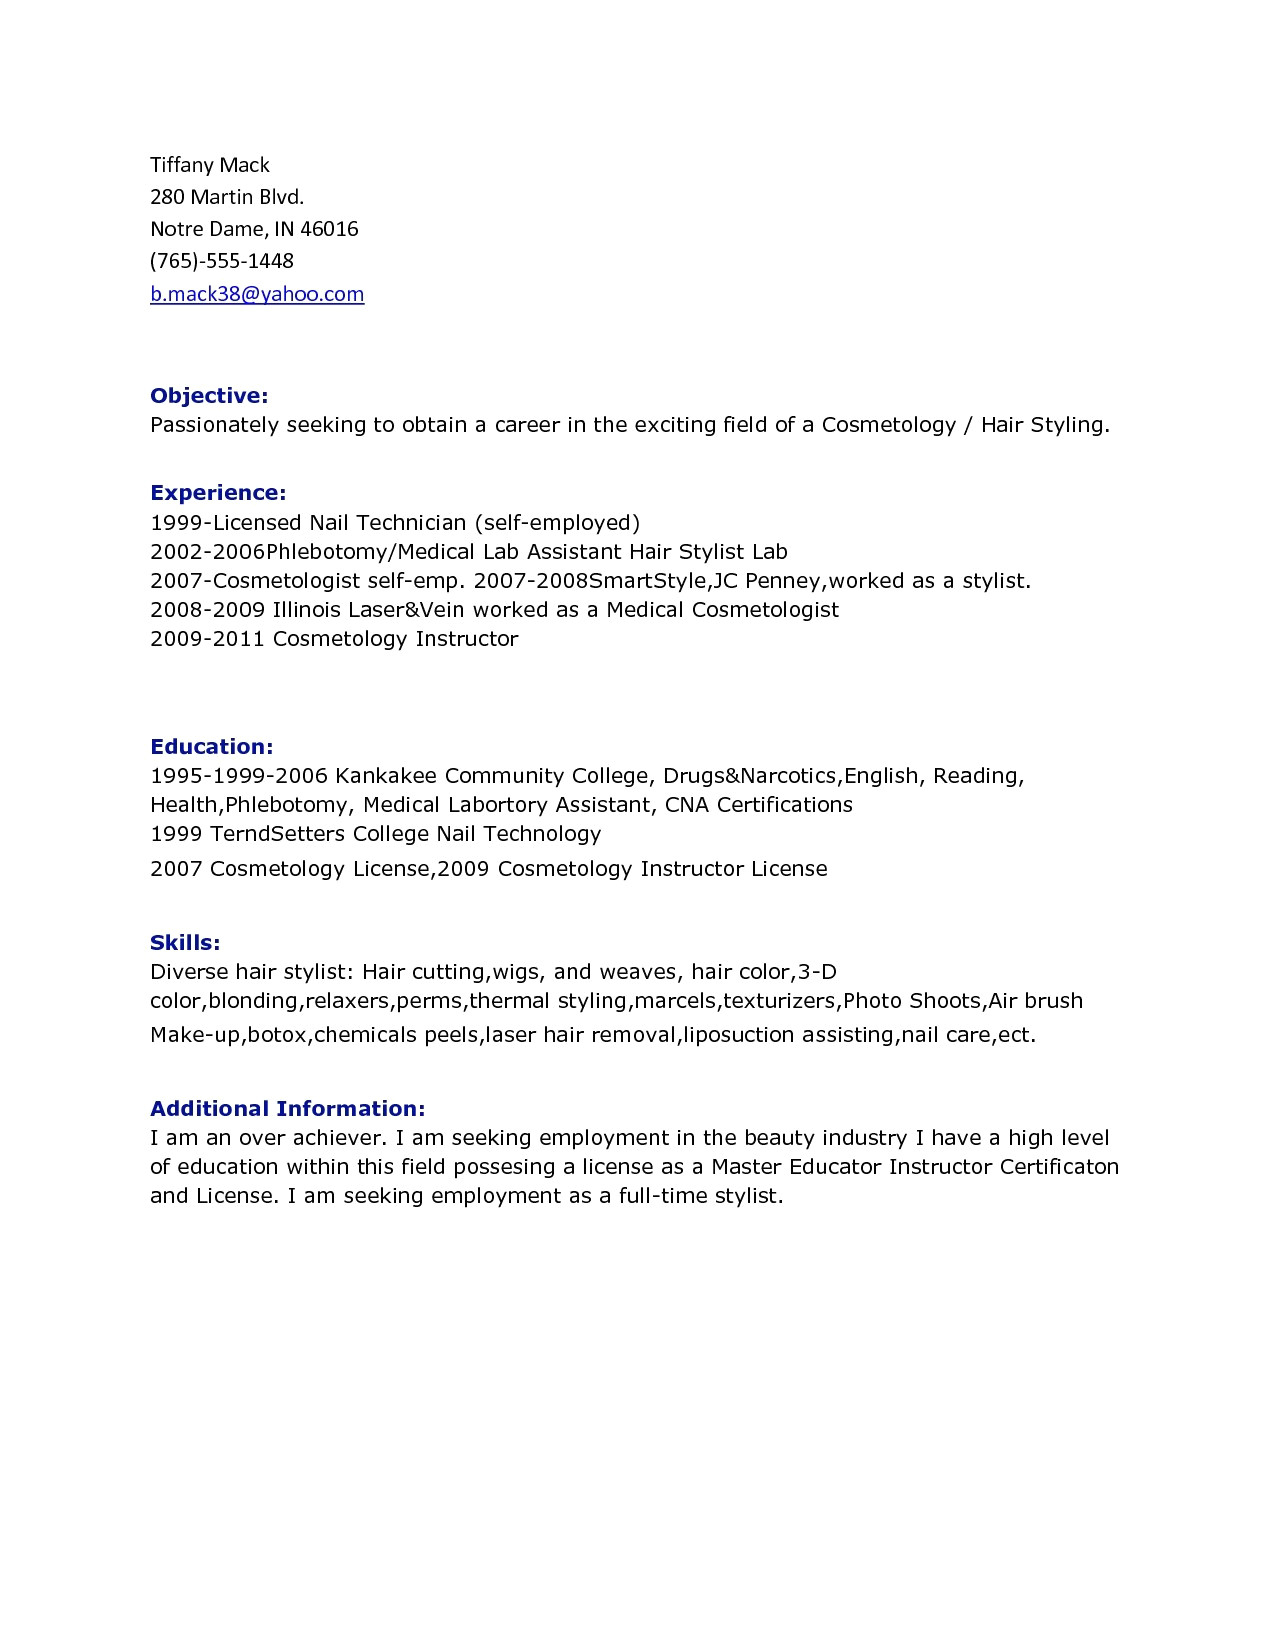 Cosmetology Resume Template - 49 Inspirational Information Technology Resume